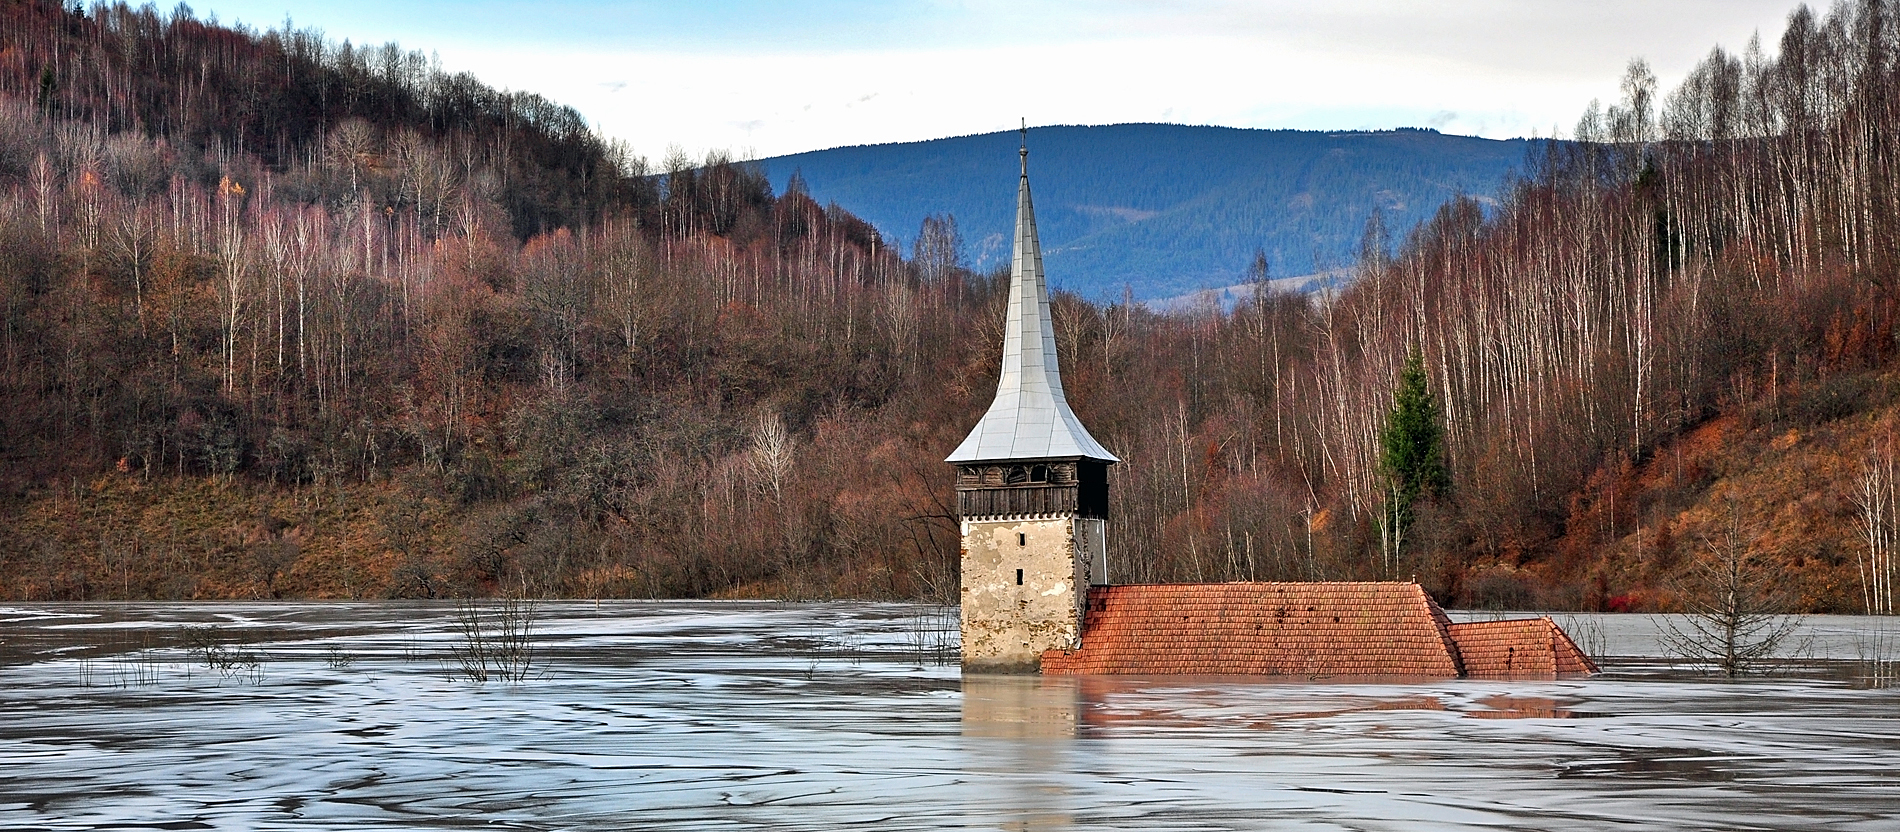 Flooded church by contaminated water and mud. Geamana, Romania